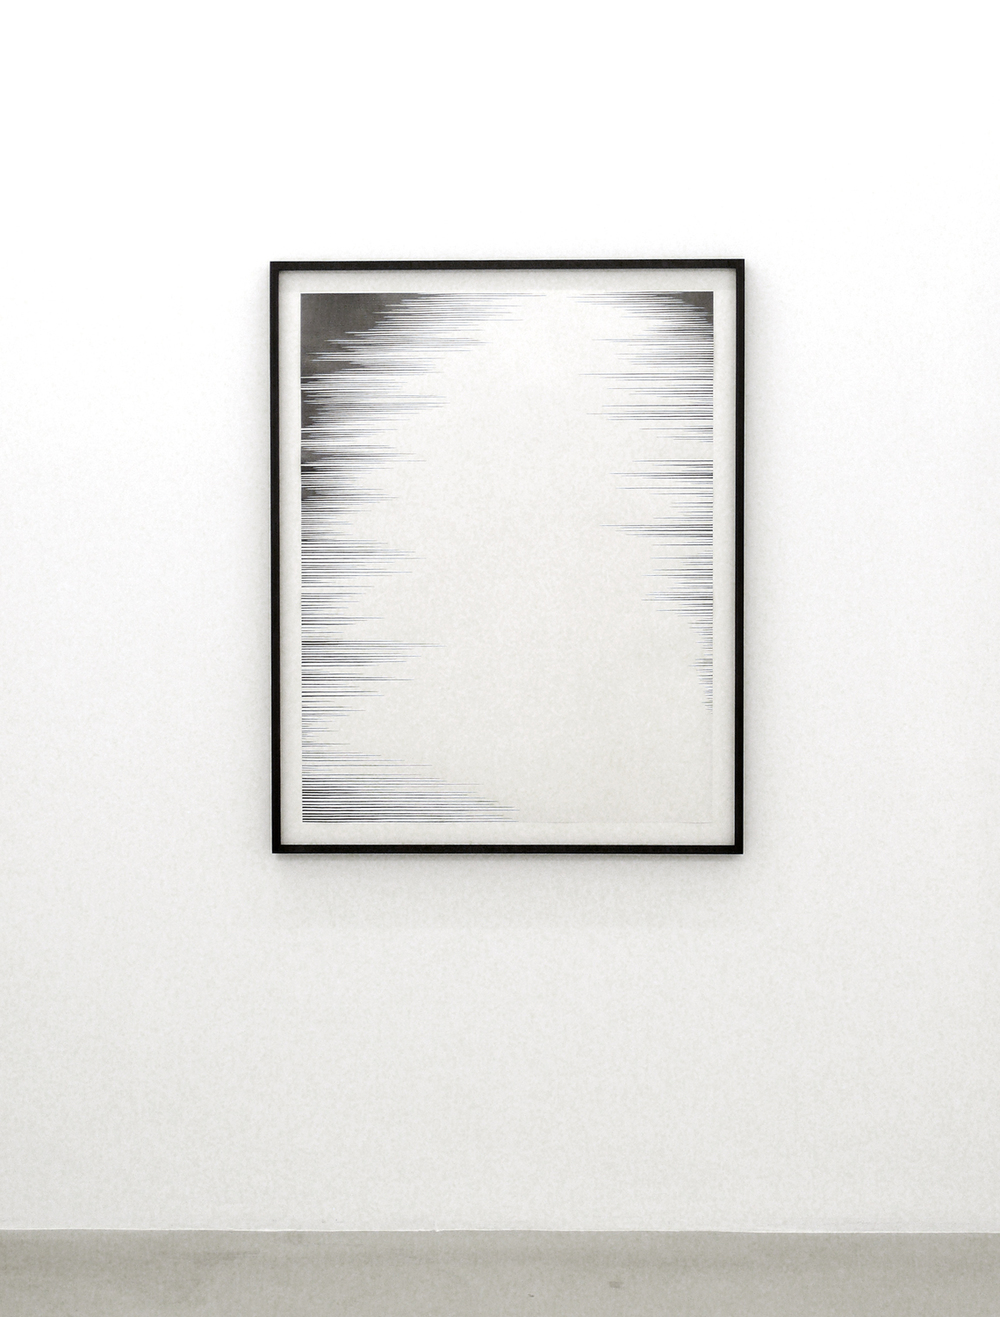 dust ll  , 2011, pencil on paper, 110 x 86cm      hyle, 2011, Lullin + Ferrari, Zürich